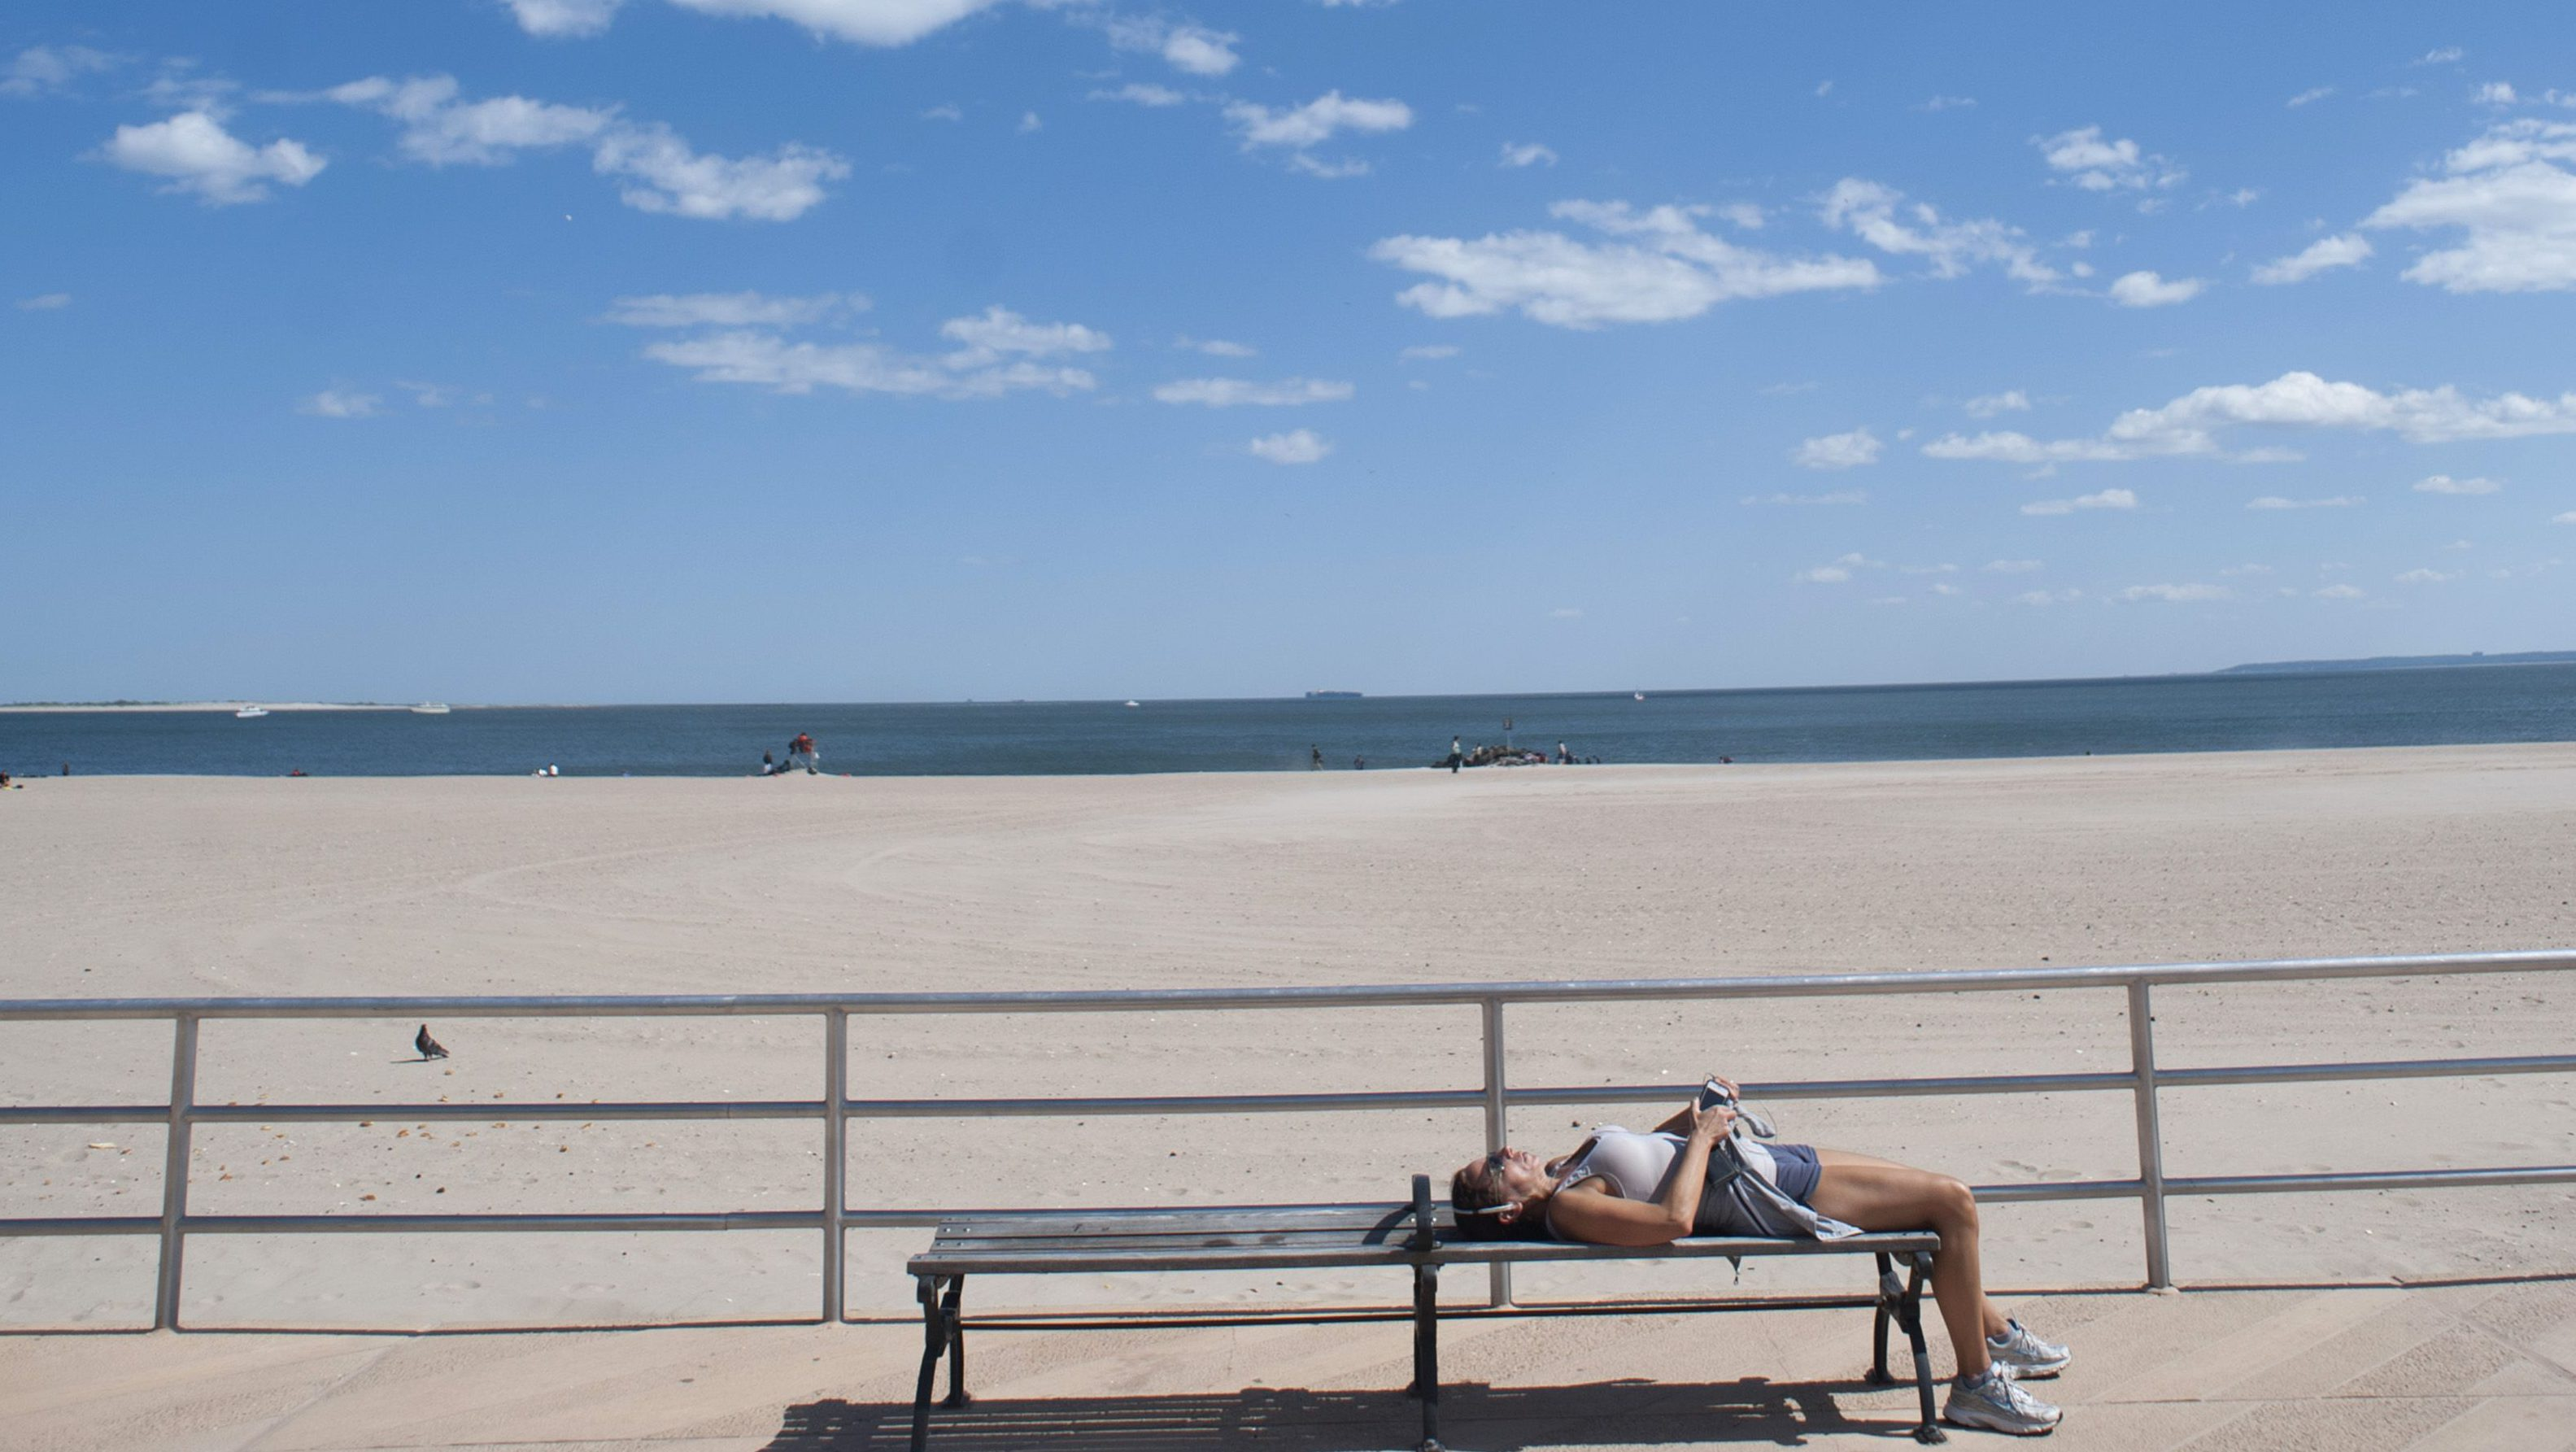 A woman lays on a bench along the boardwalk in Coney Island in the Brooklyn Borough of New York, May 26, 2013. Seven months after Hurricane Sandy, New York's beaches have reopened before the Memorial Day holiday.   (UNITED STATES - Tags: ENVIRONMENT SOCIETY) - RTX102C1